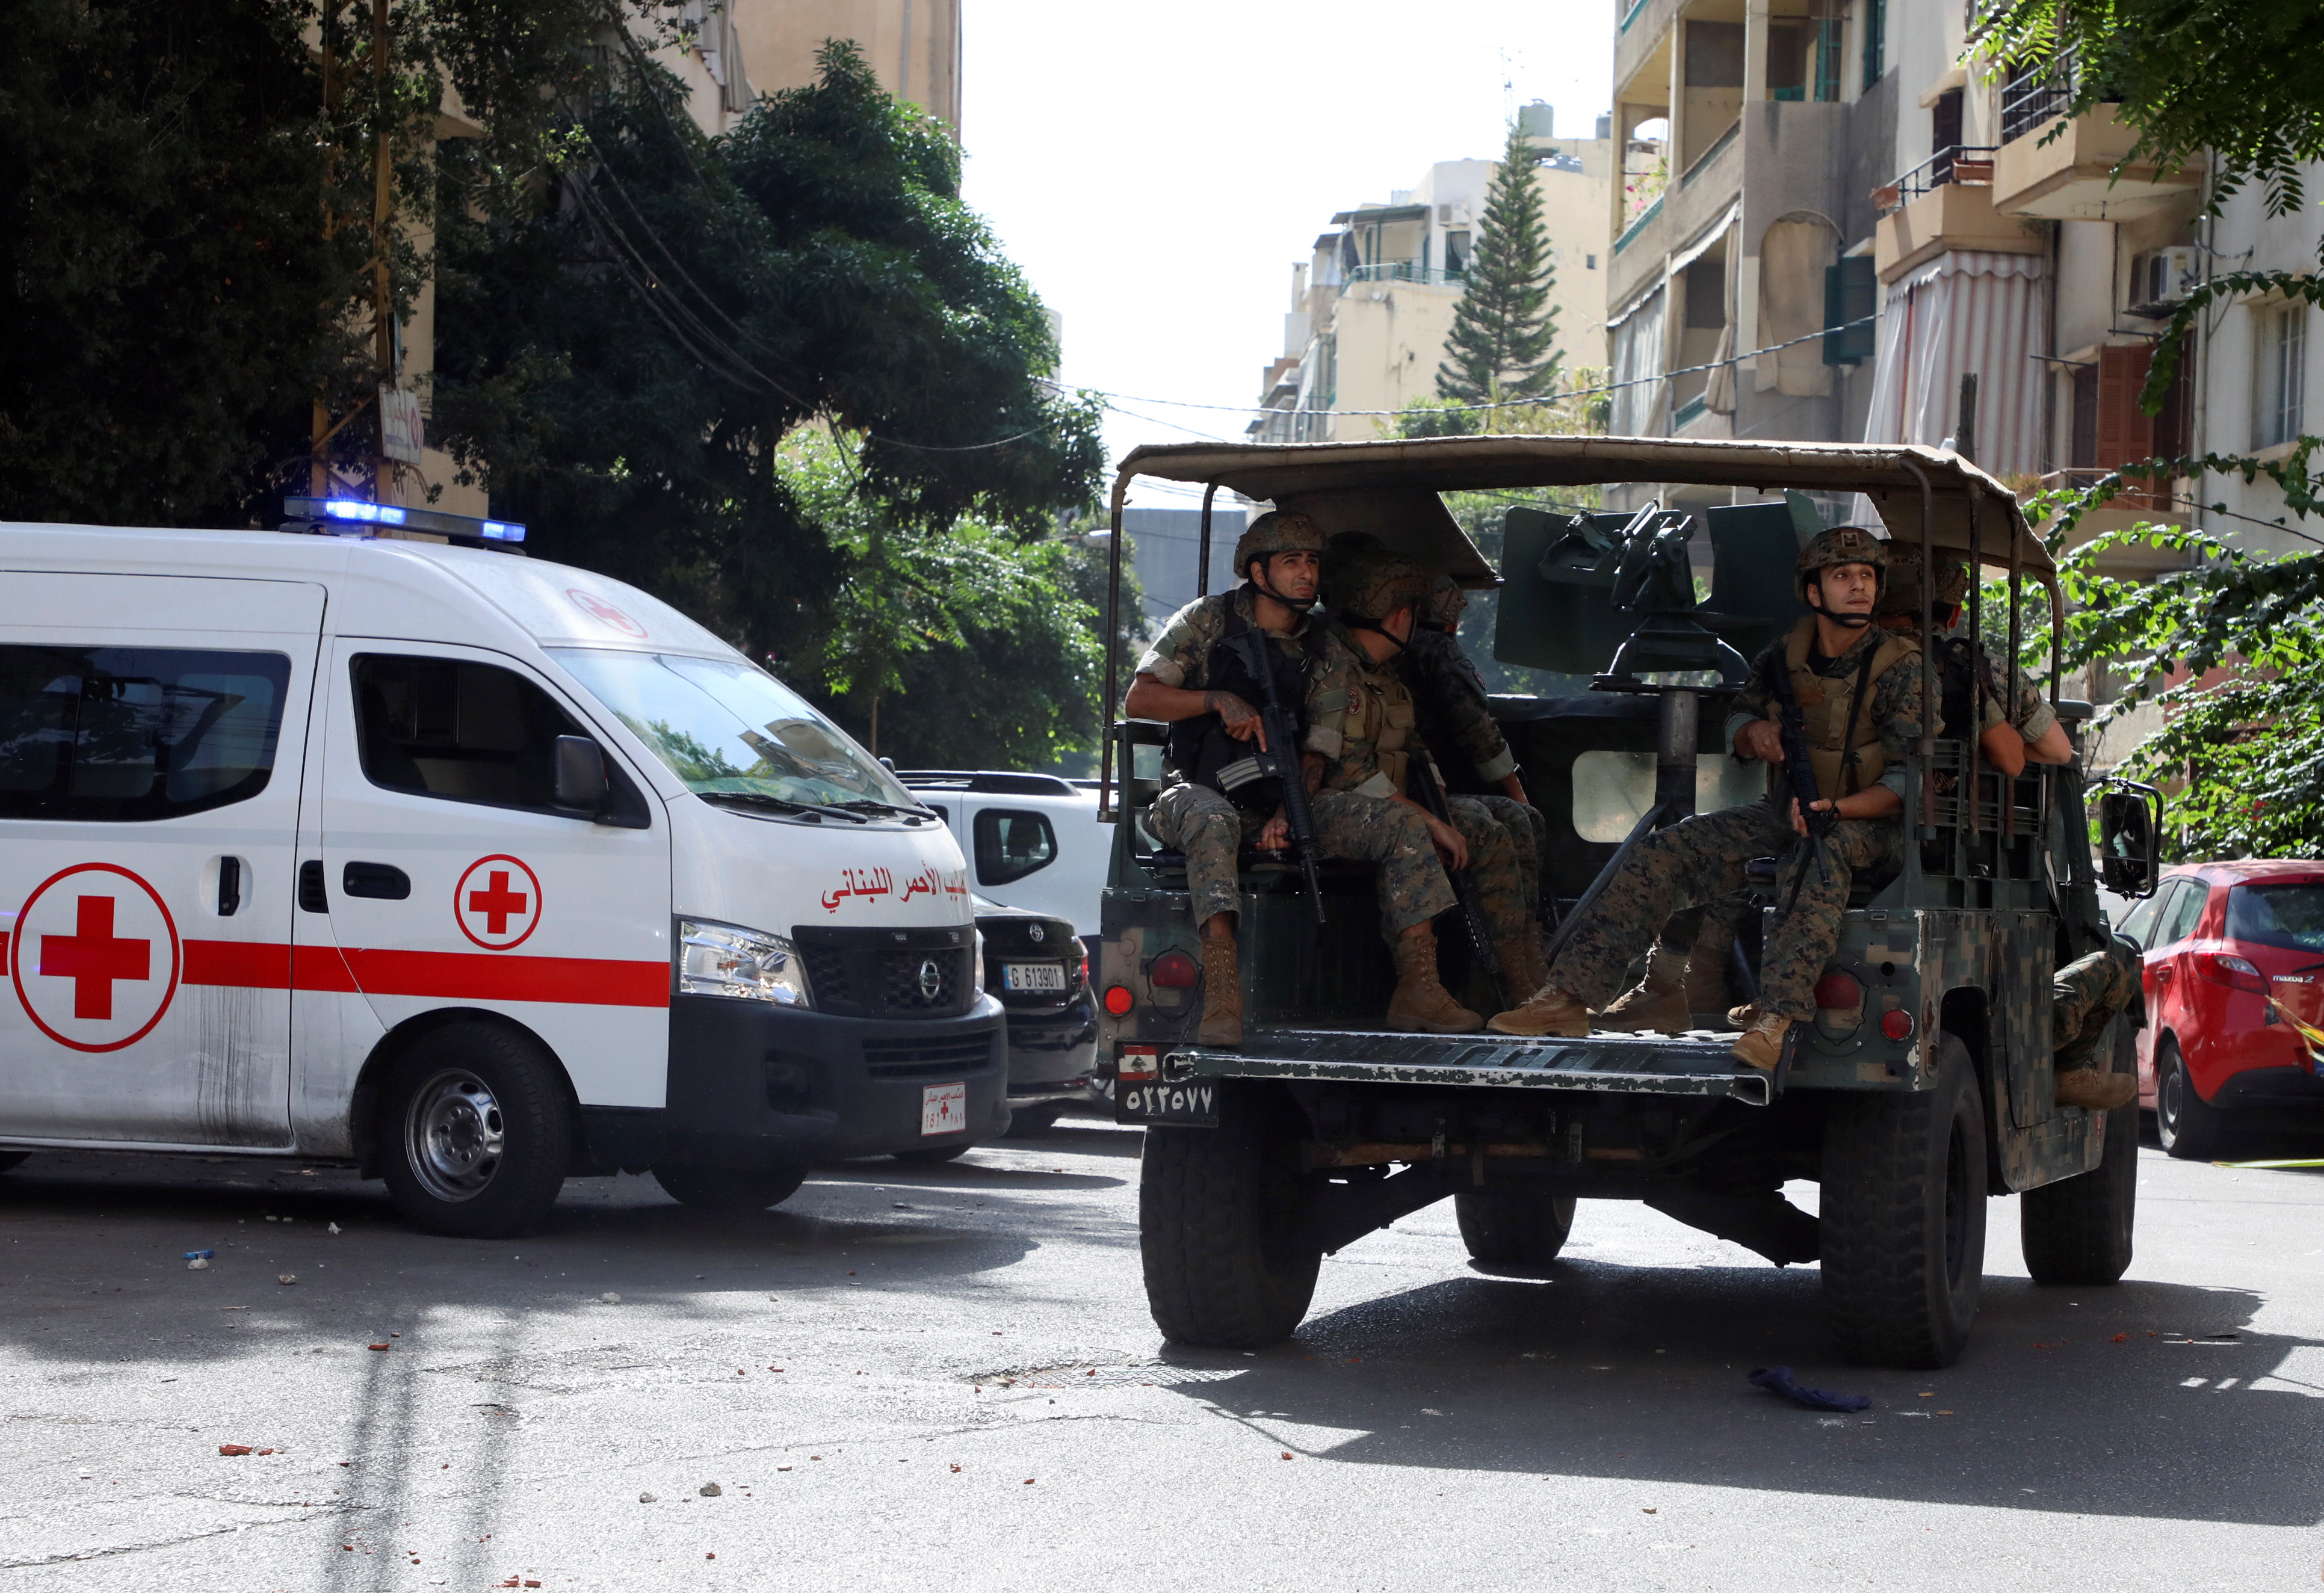 A Lebanese Red Cross vehicle is pictured as army soldiers are deployed after gunfire erupted near the site of a protest that was getting underway against Judge Tarek Bitar, who is investigating last year's port explosion, in Beirut, Lebanon October 14, 2021. REUTERS/Mohamed Azakir